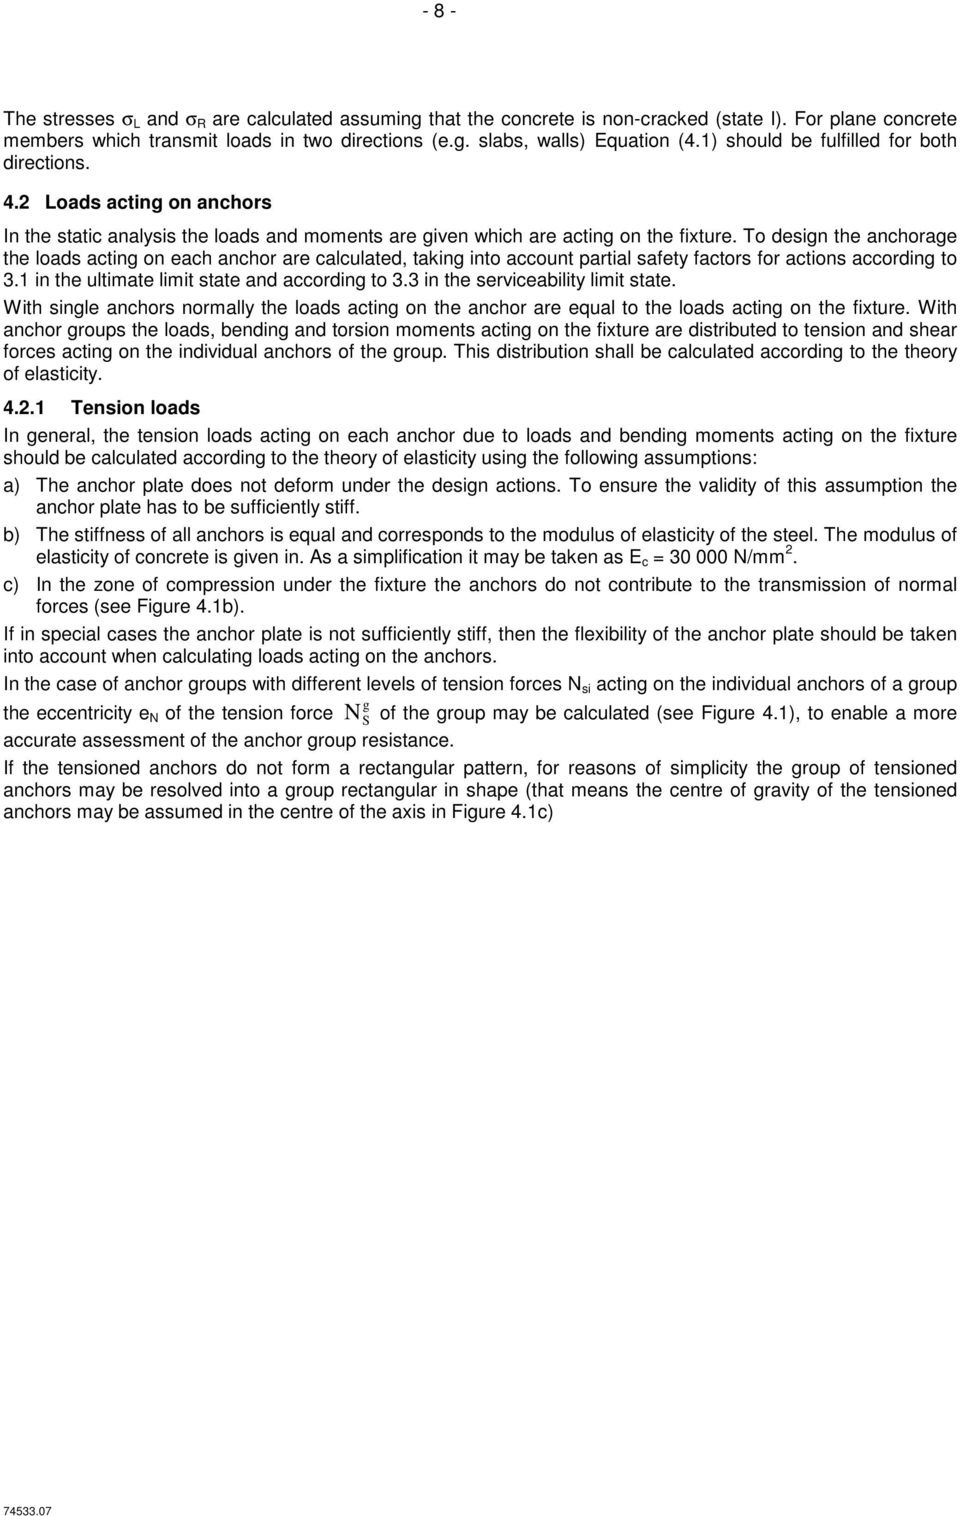 To design the anchorage the loads acting on each anchor are calculated, taking into account partial safety factors for actions according to 3.1 in the ultimate limit state and according to 3.